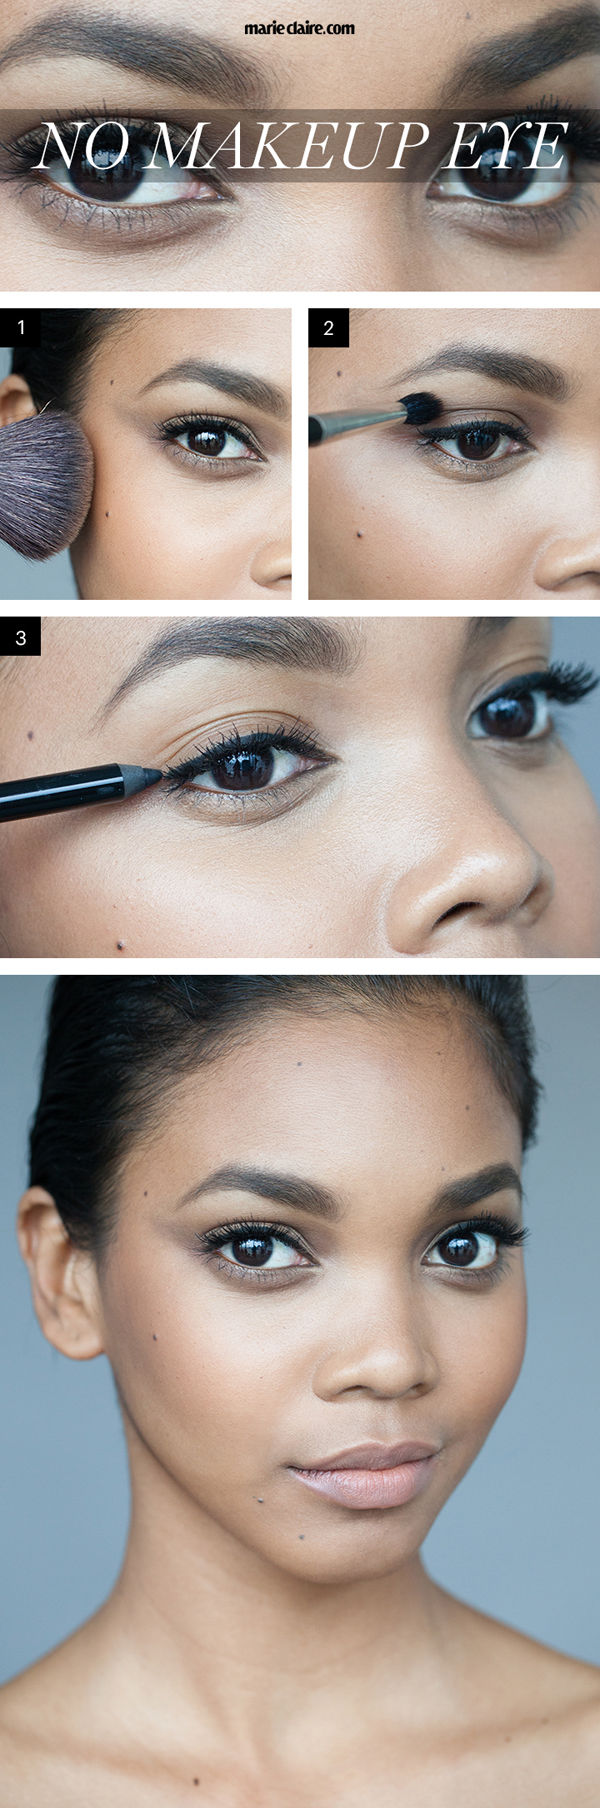 no makeup eye pictures, photos, and images for facebook